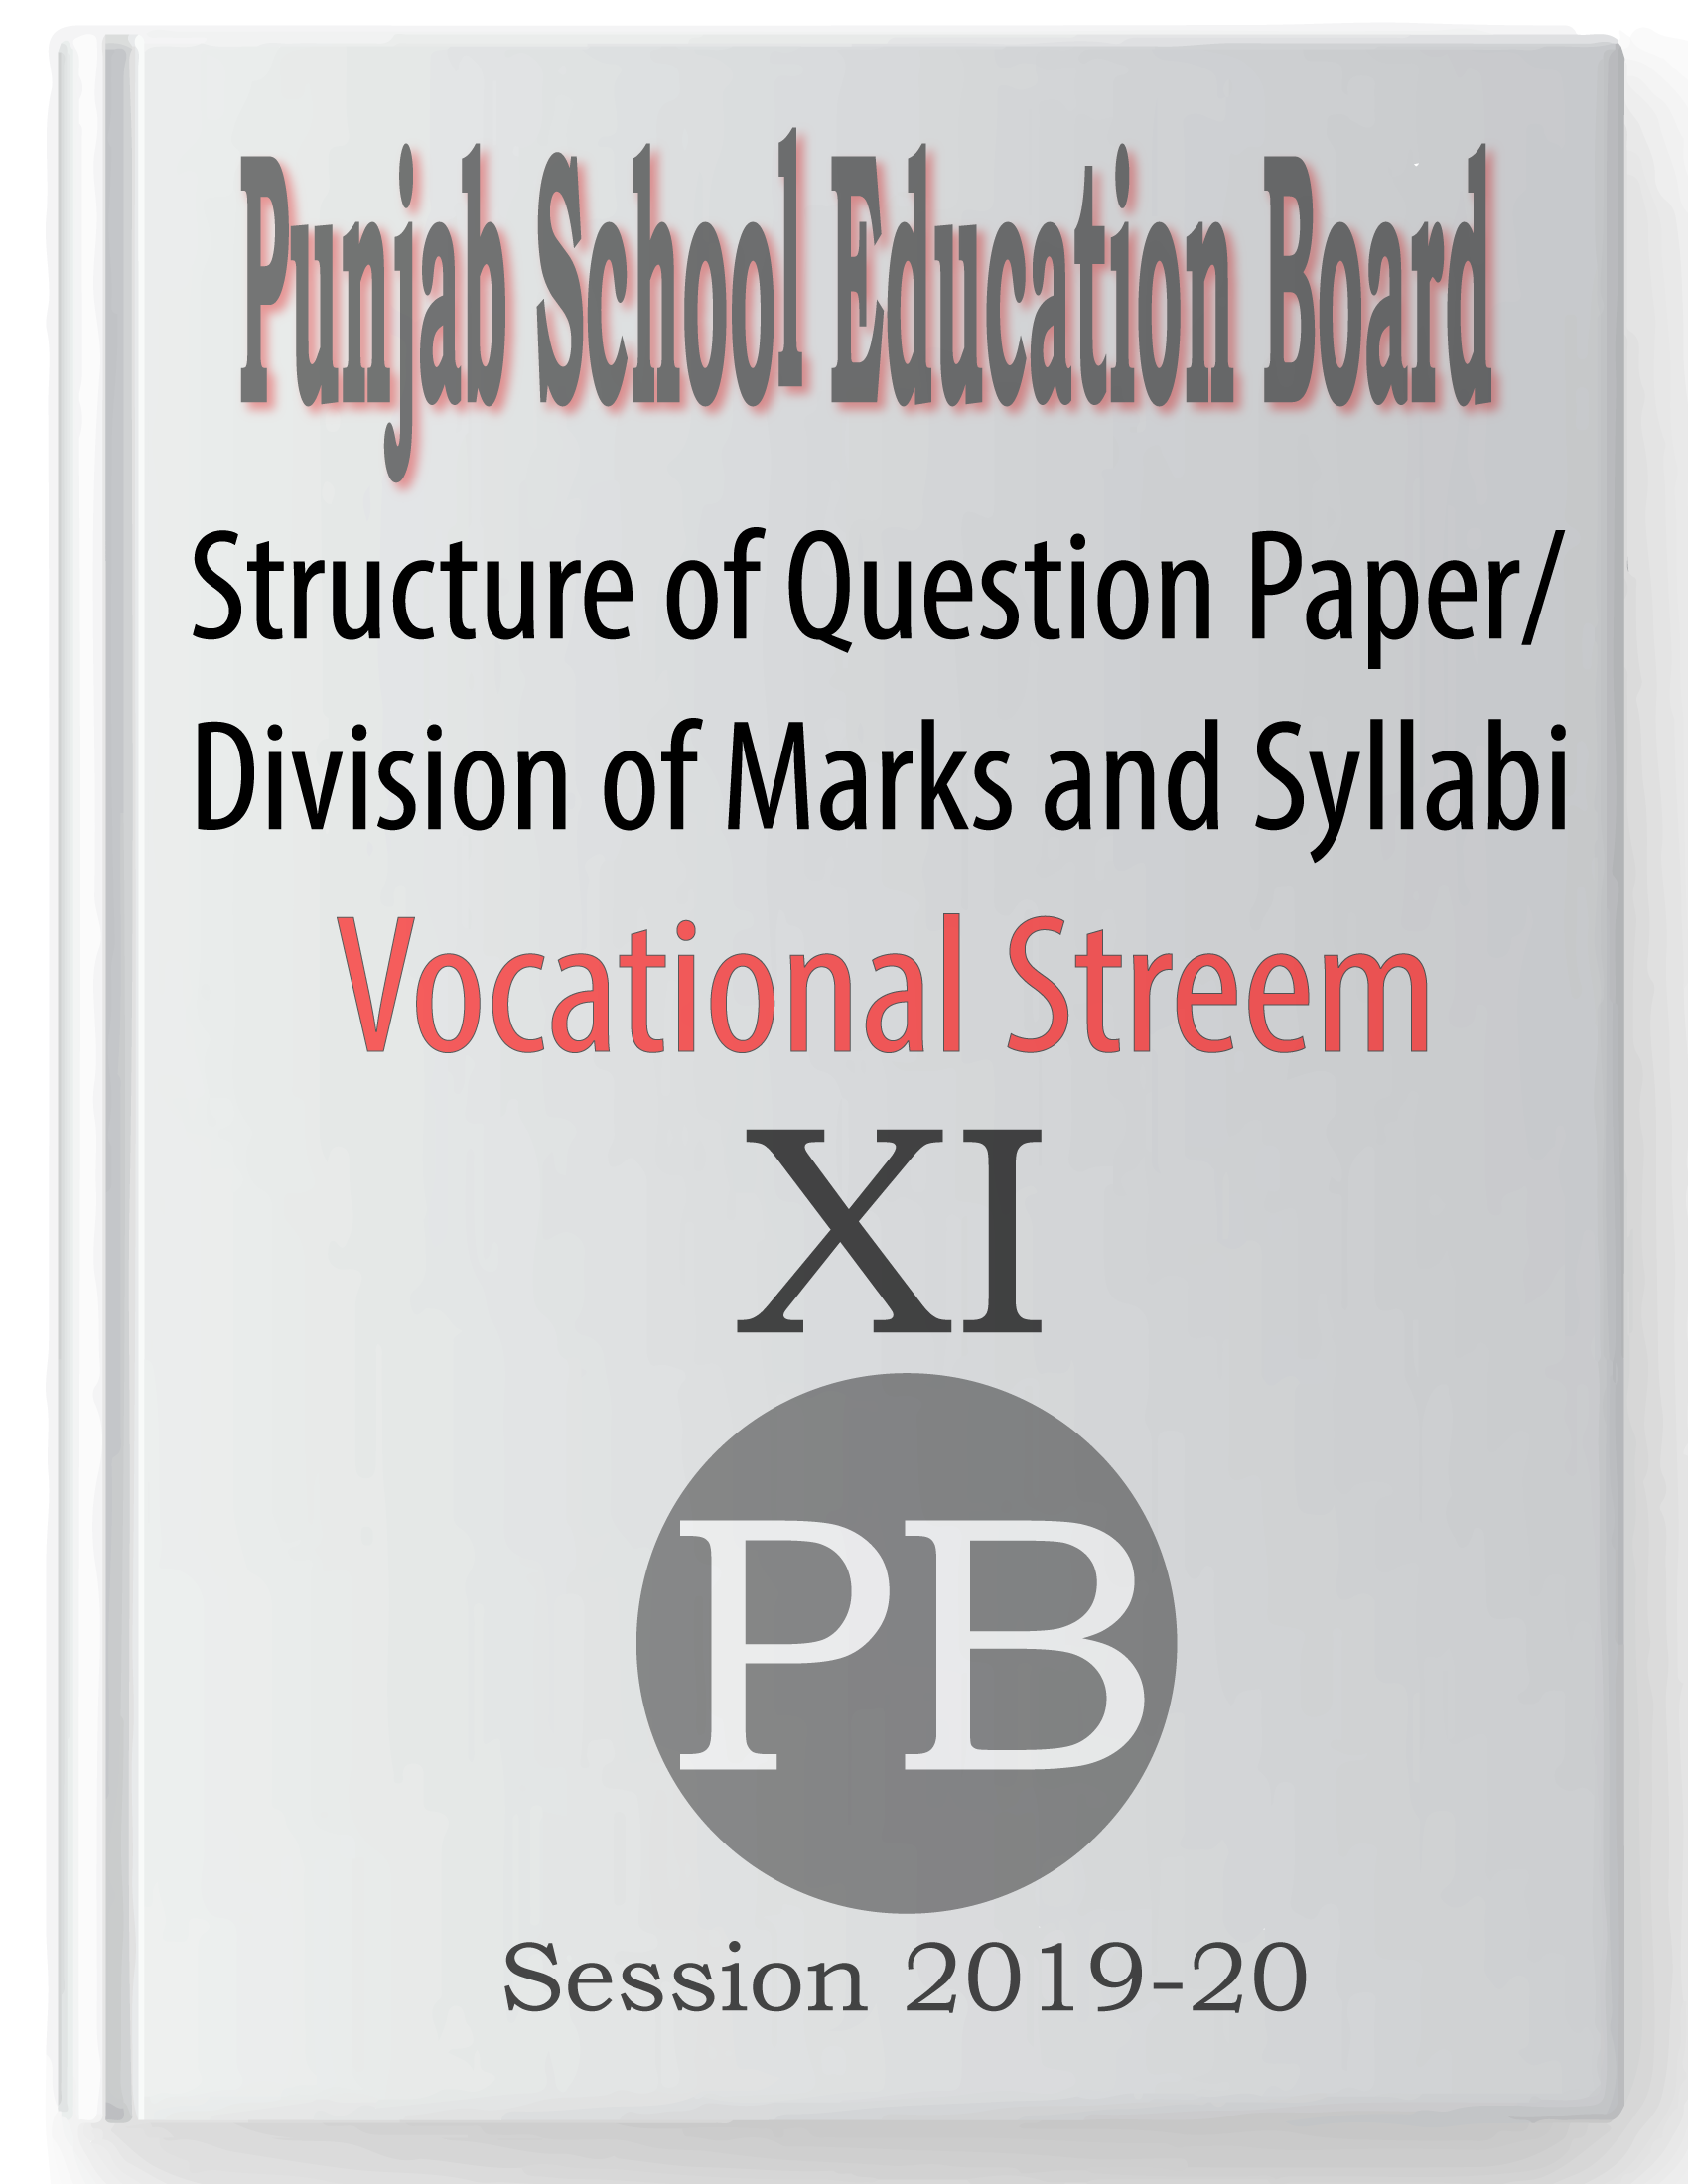 Syllabus from Academic Year 2019-20 of Punjab School